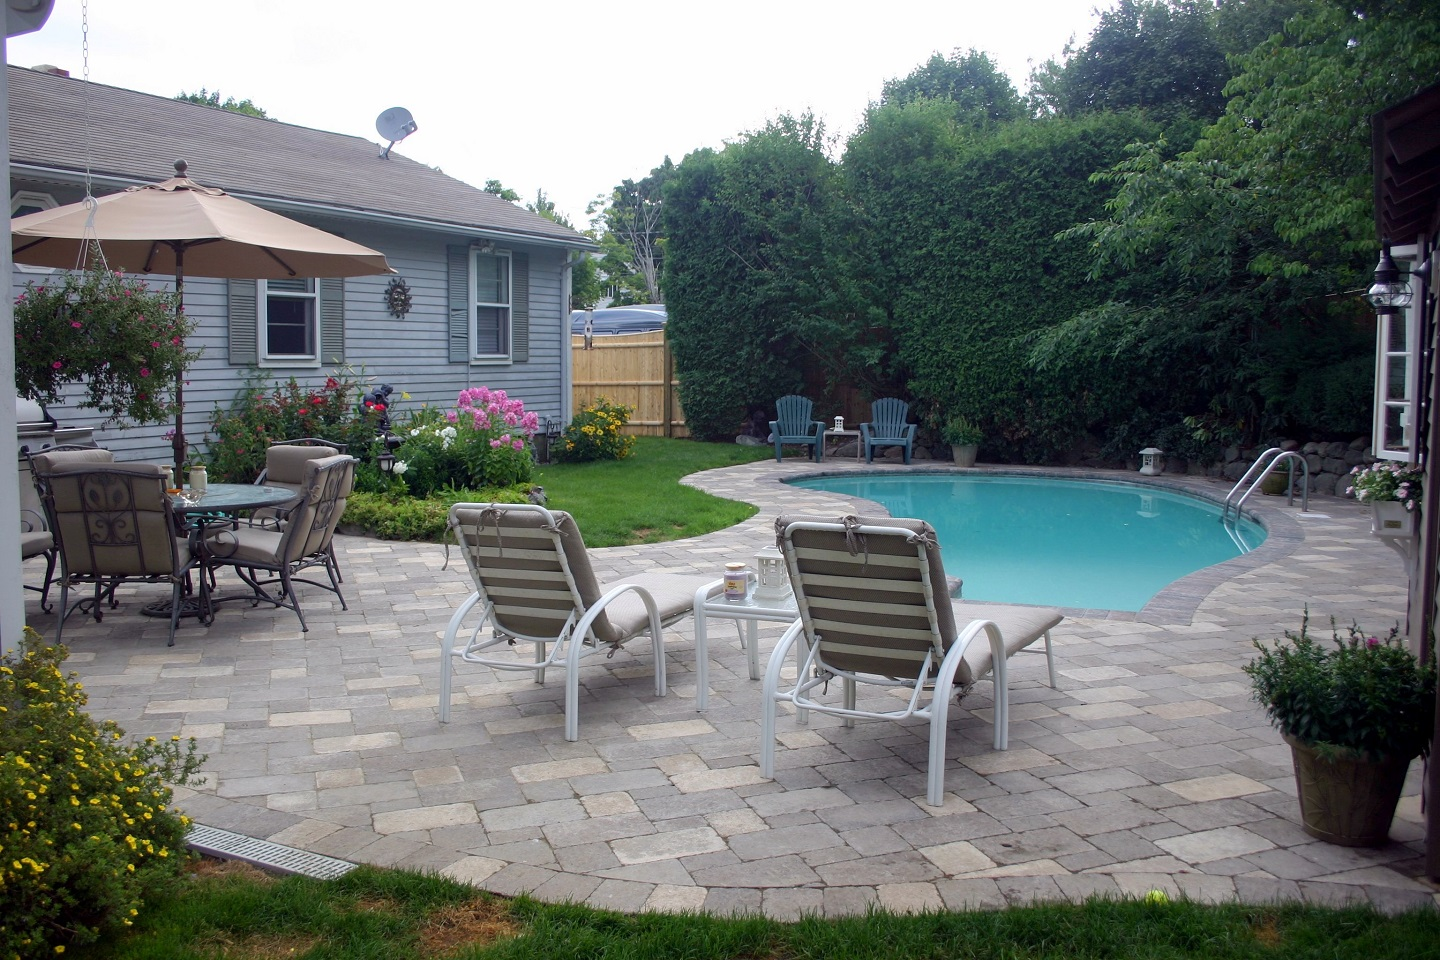 Deck builder - new pool deck in Belmont MA